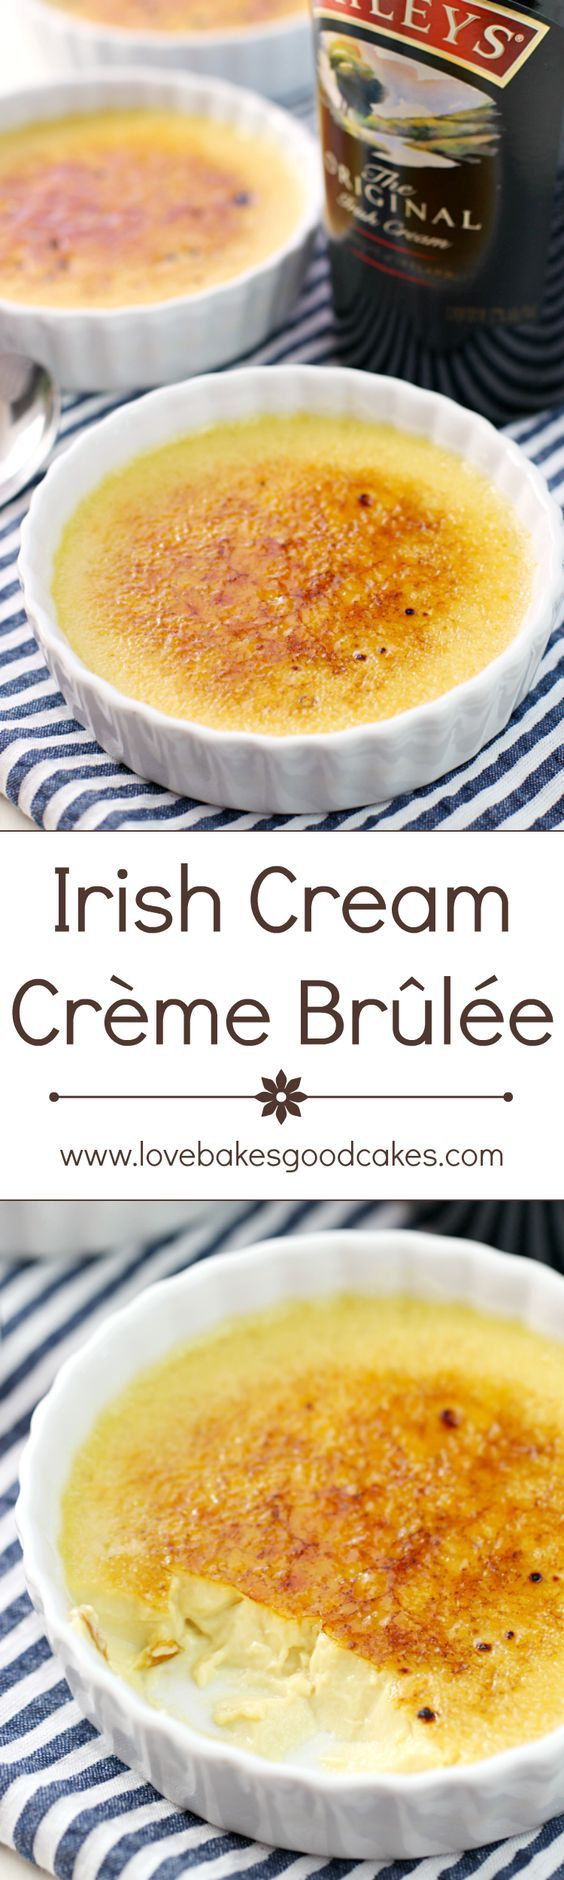 Crème Brûlée gets an update with the addition of Irish Cream! This Irish Cream Crème Brûlée is a stunning but simple dessert, and it's the perfect way to end your meal!